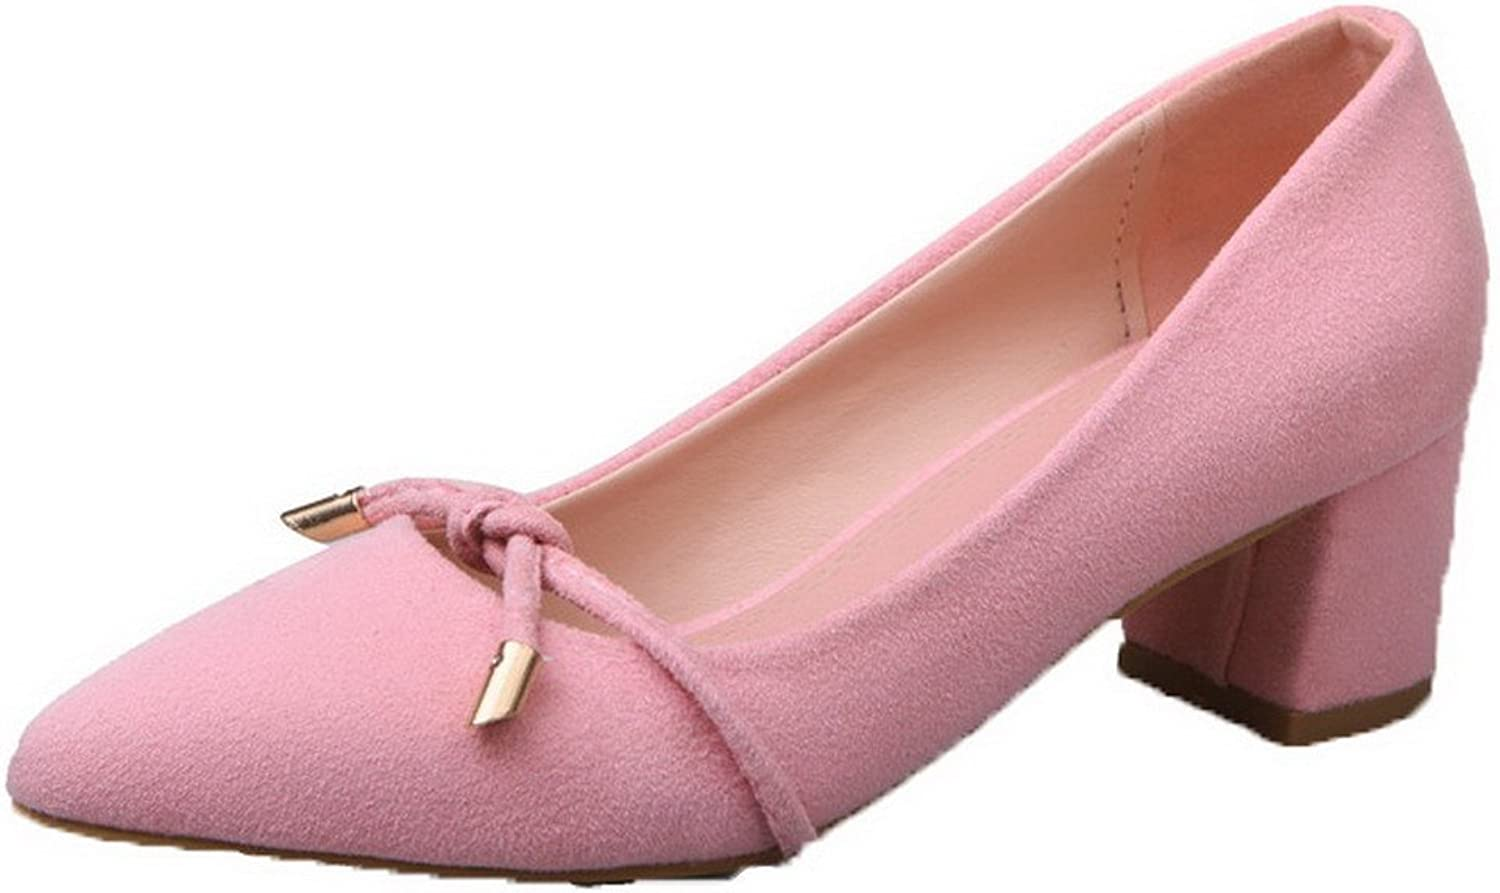 WeenFashion Women's Frosted Pull-On Kitten-Heels Pointed-Toe Solid Pumps-shoes